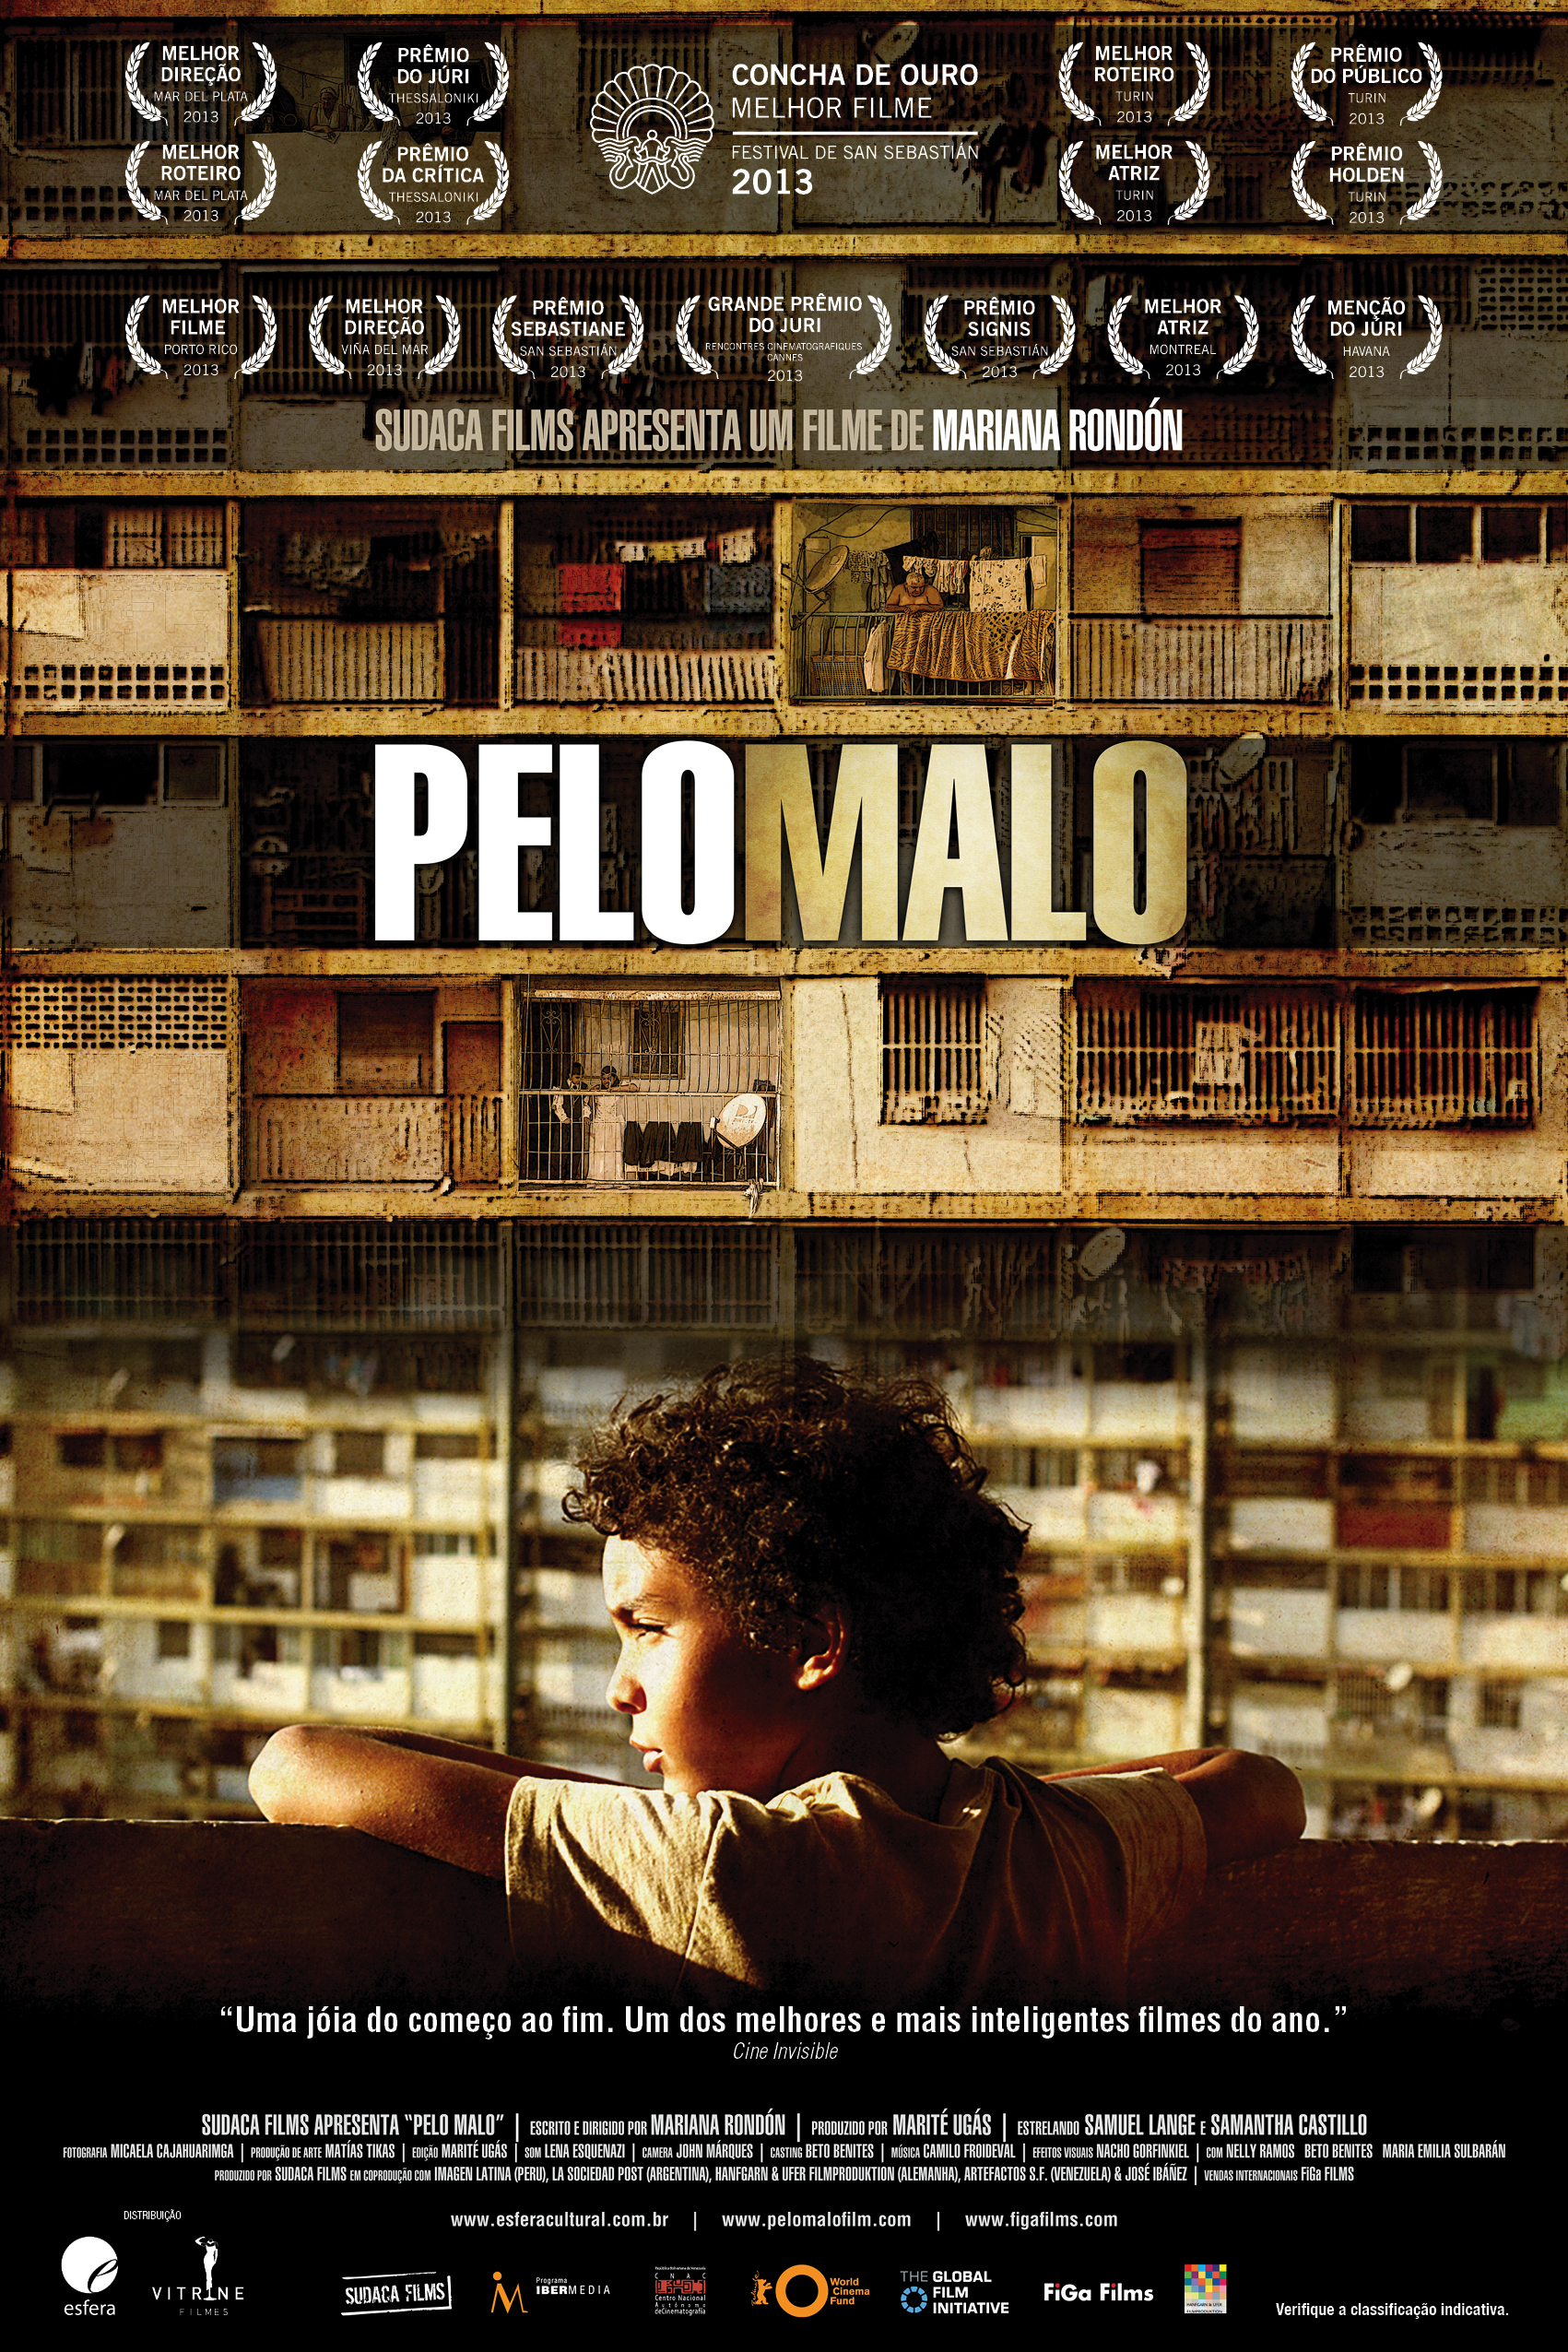 PELO MALO-Official Poster Banner PROMO XLG-07ABRIL2014